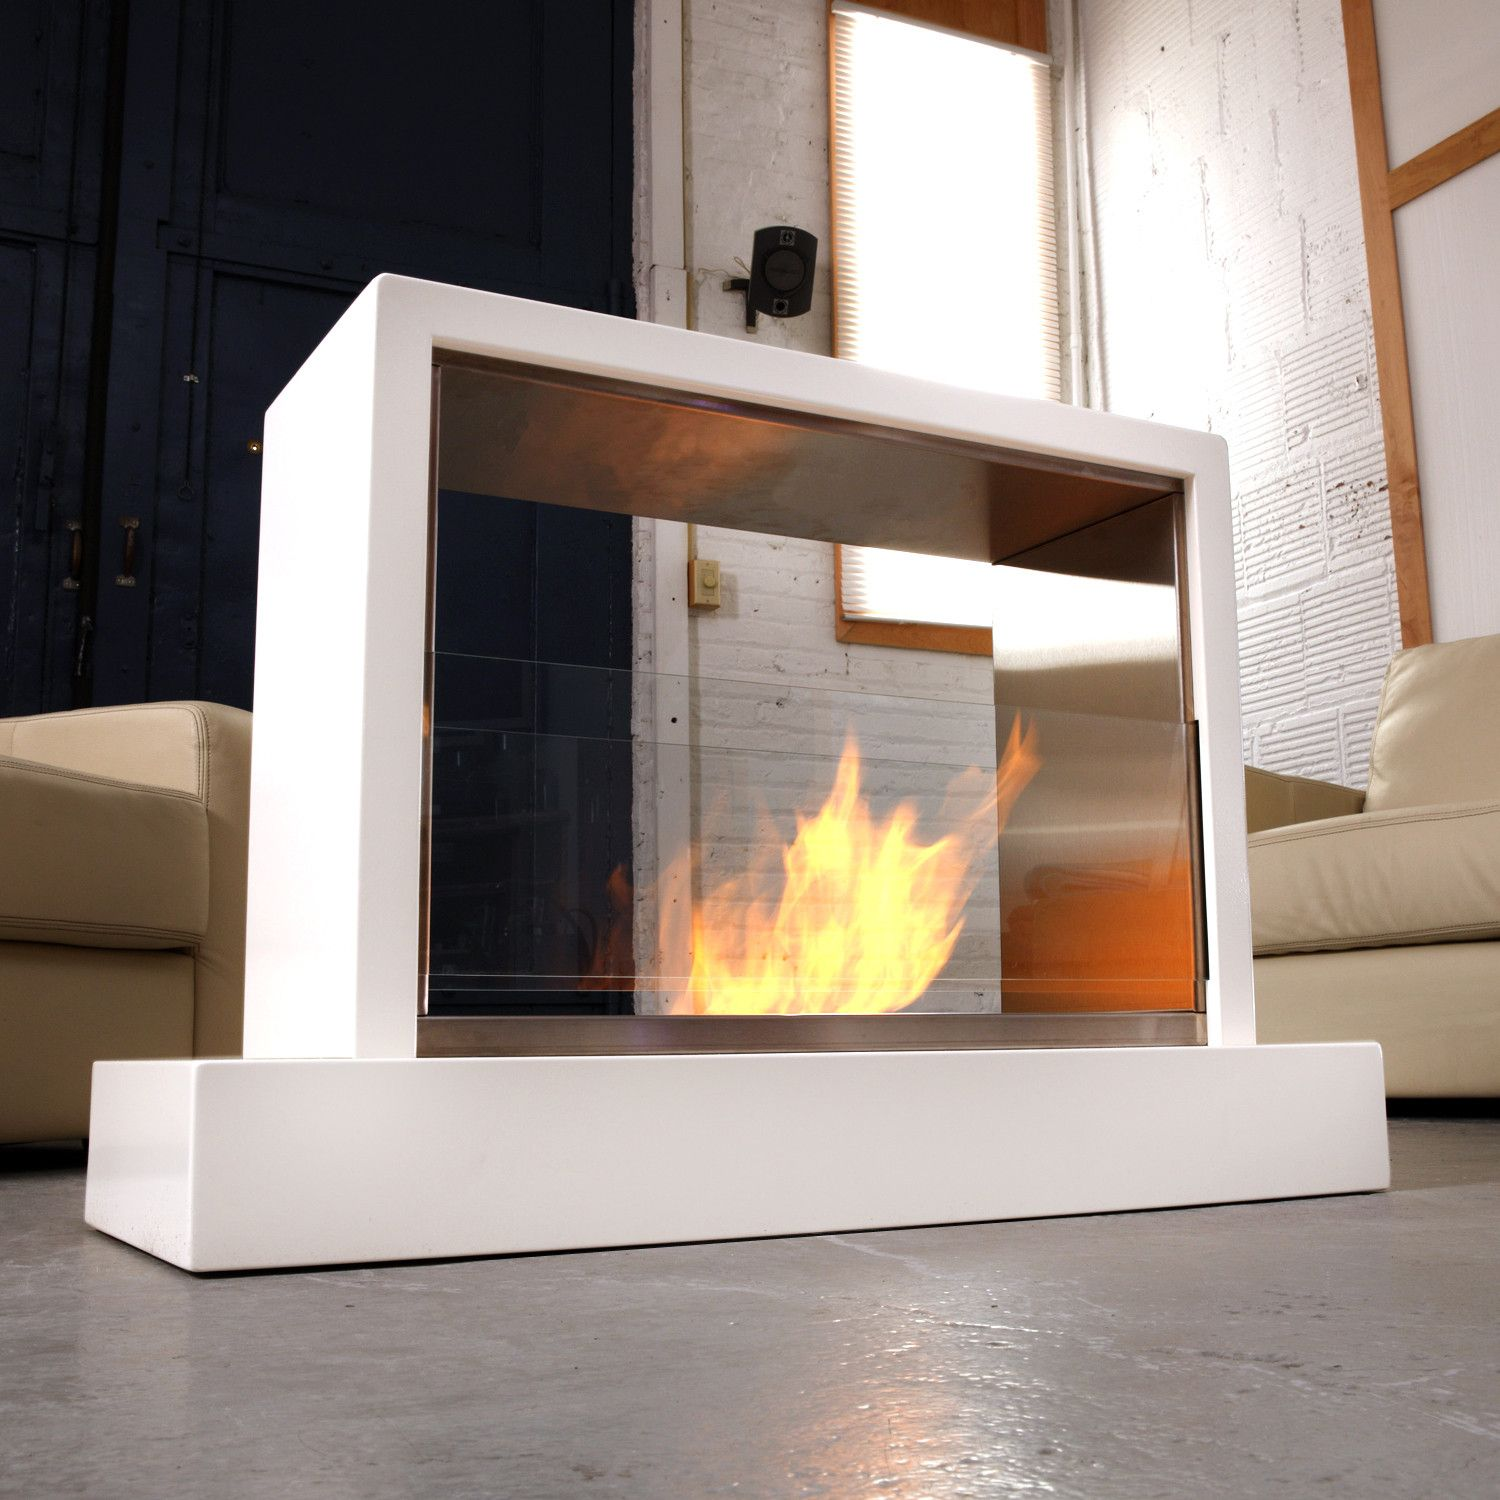 Outdoor Fireplace Electric Insight Indoor Outdoor Fireplace White 371 Chic Bedroom